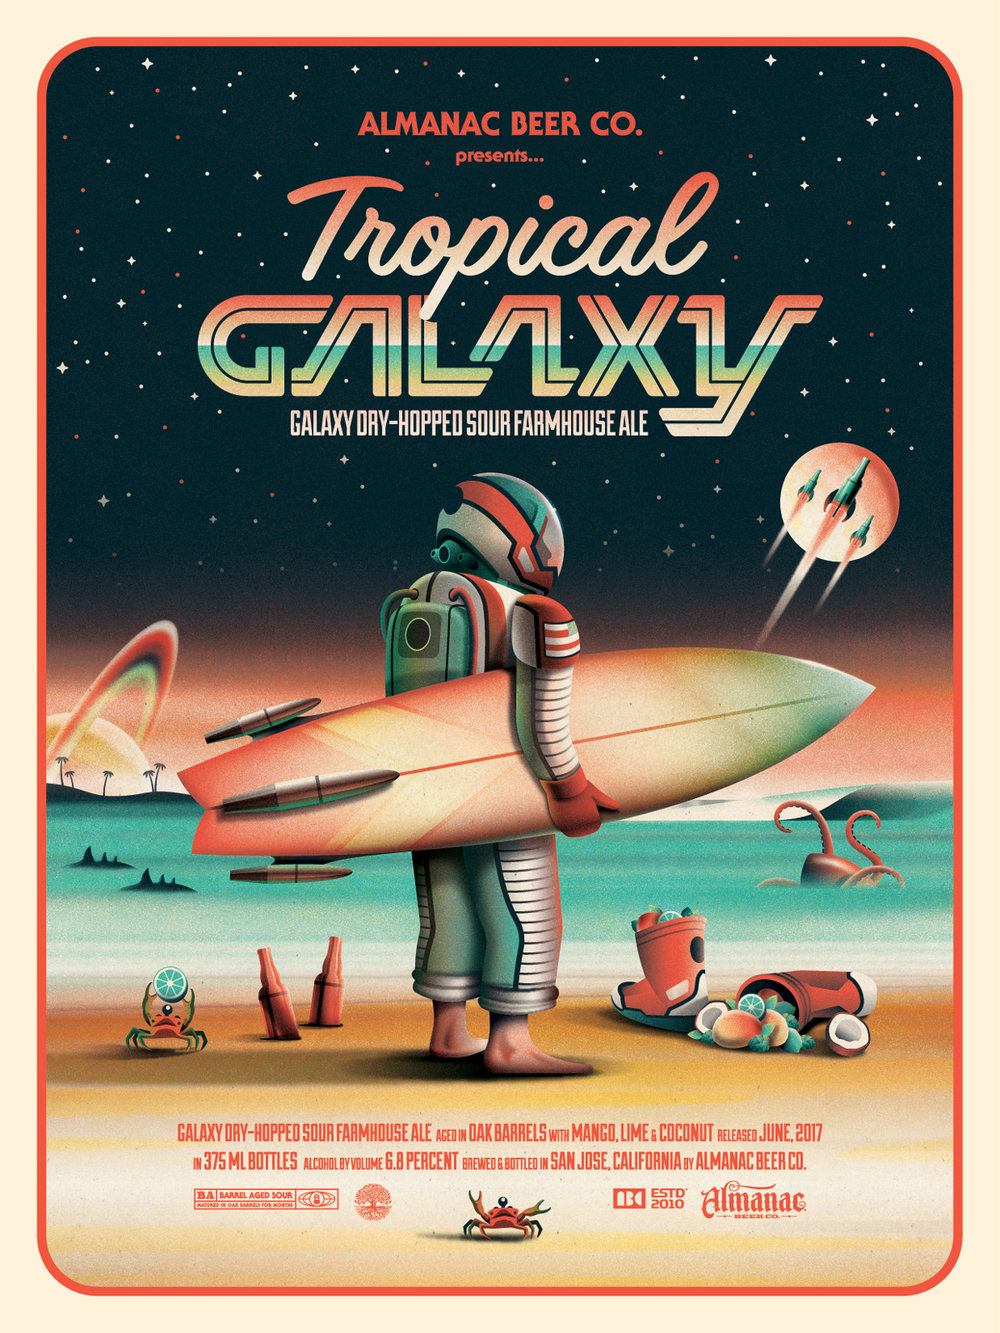 Almanac Beer Co. Tropical Galaxy Poster